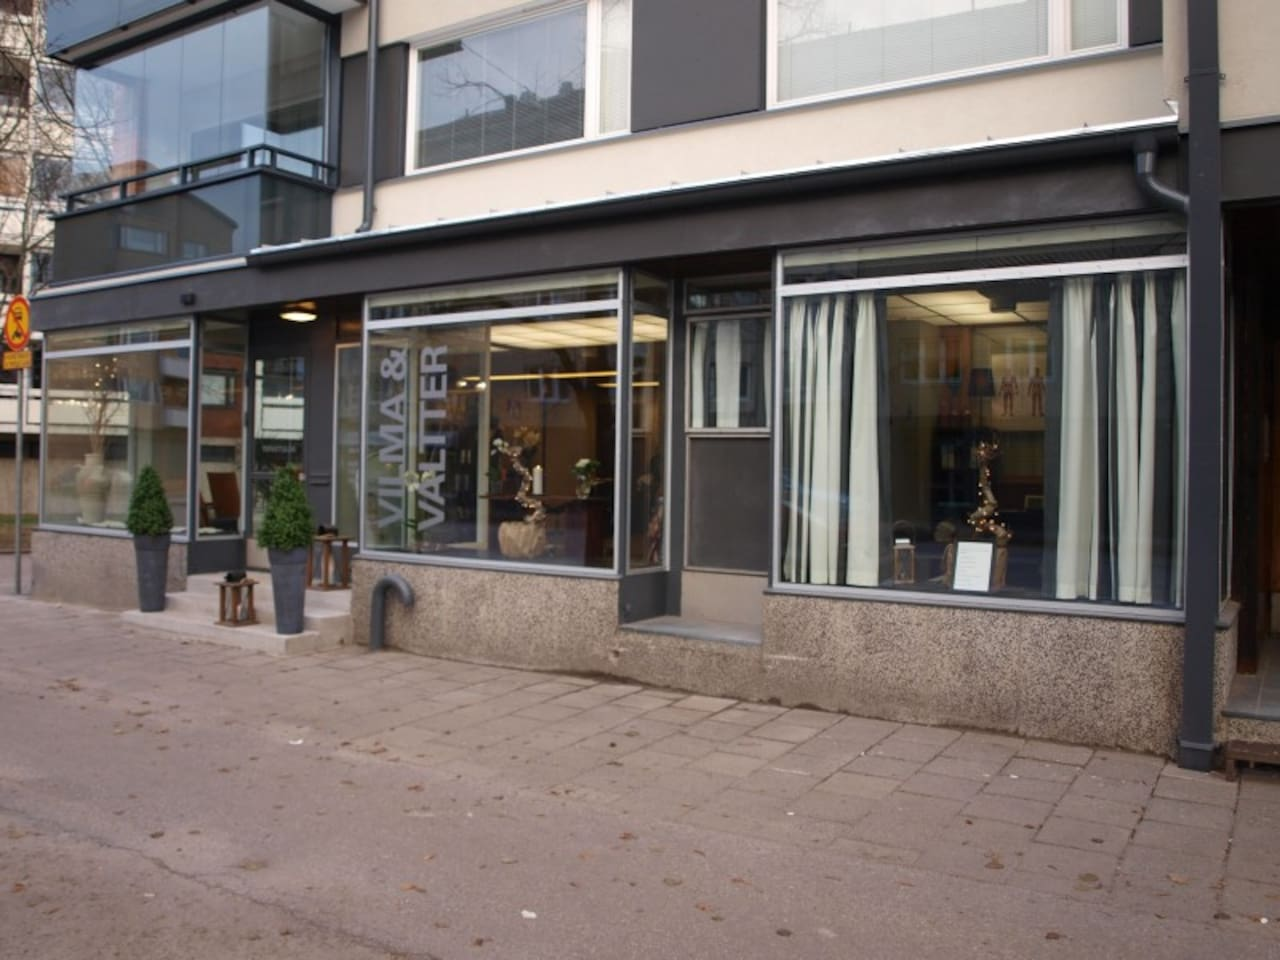 The entrance in Syväraumankatu on the right. The apartment bedroom and living room windows can be seen on the picture top right.